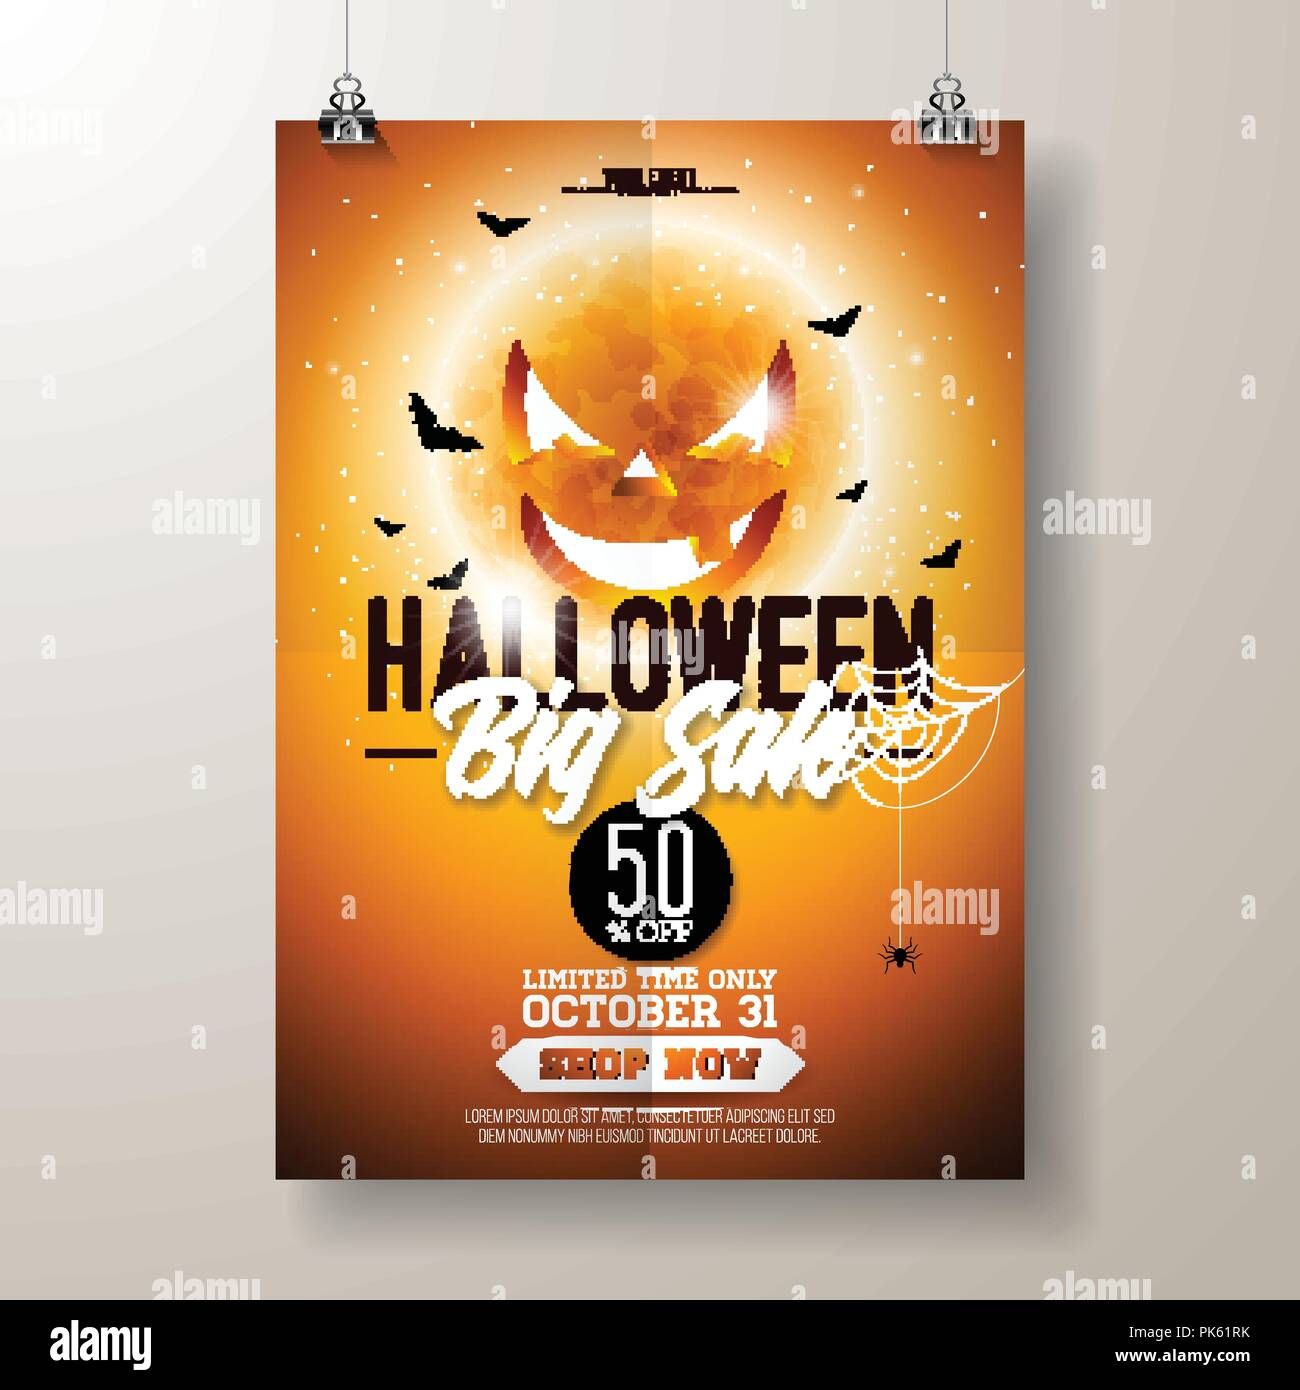 Halloween Sale Vector Flyer Illustration With Scary Faced Moon And